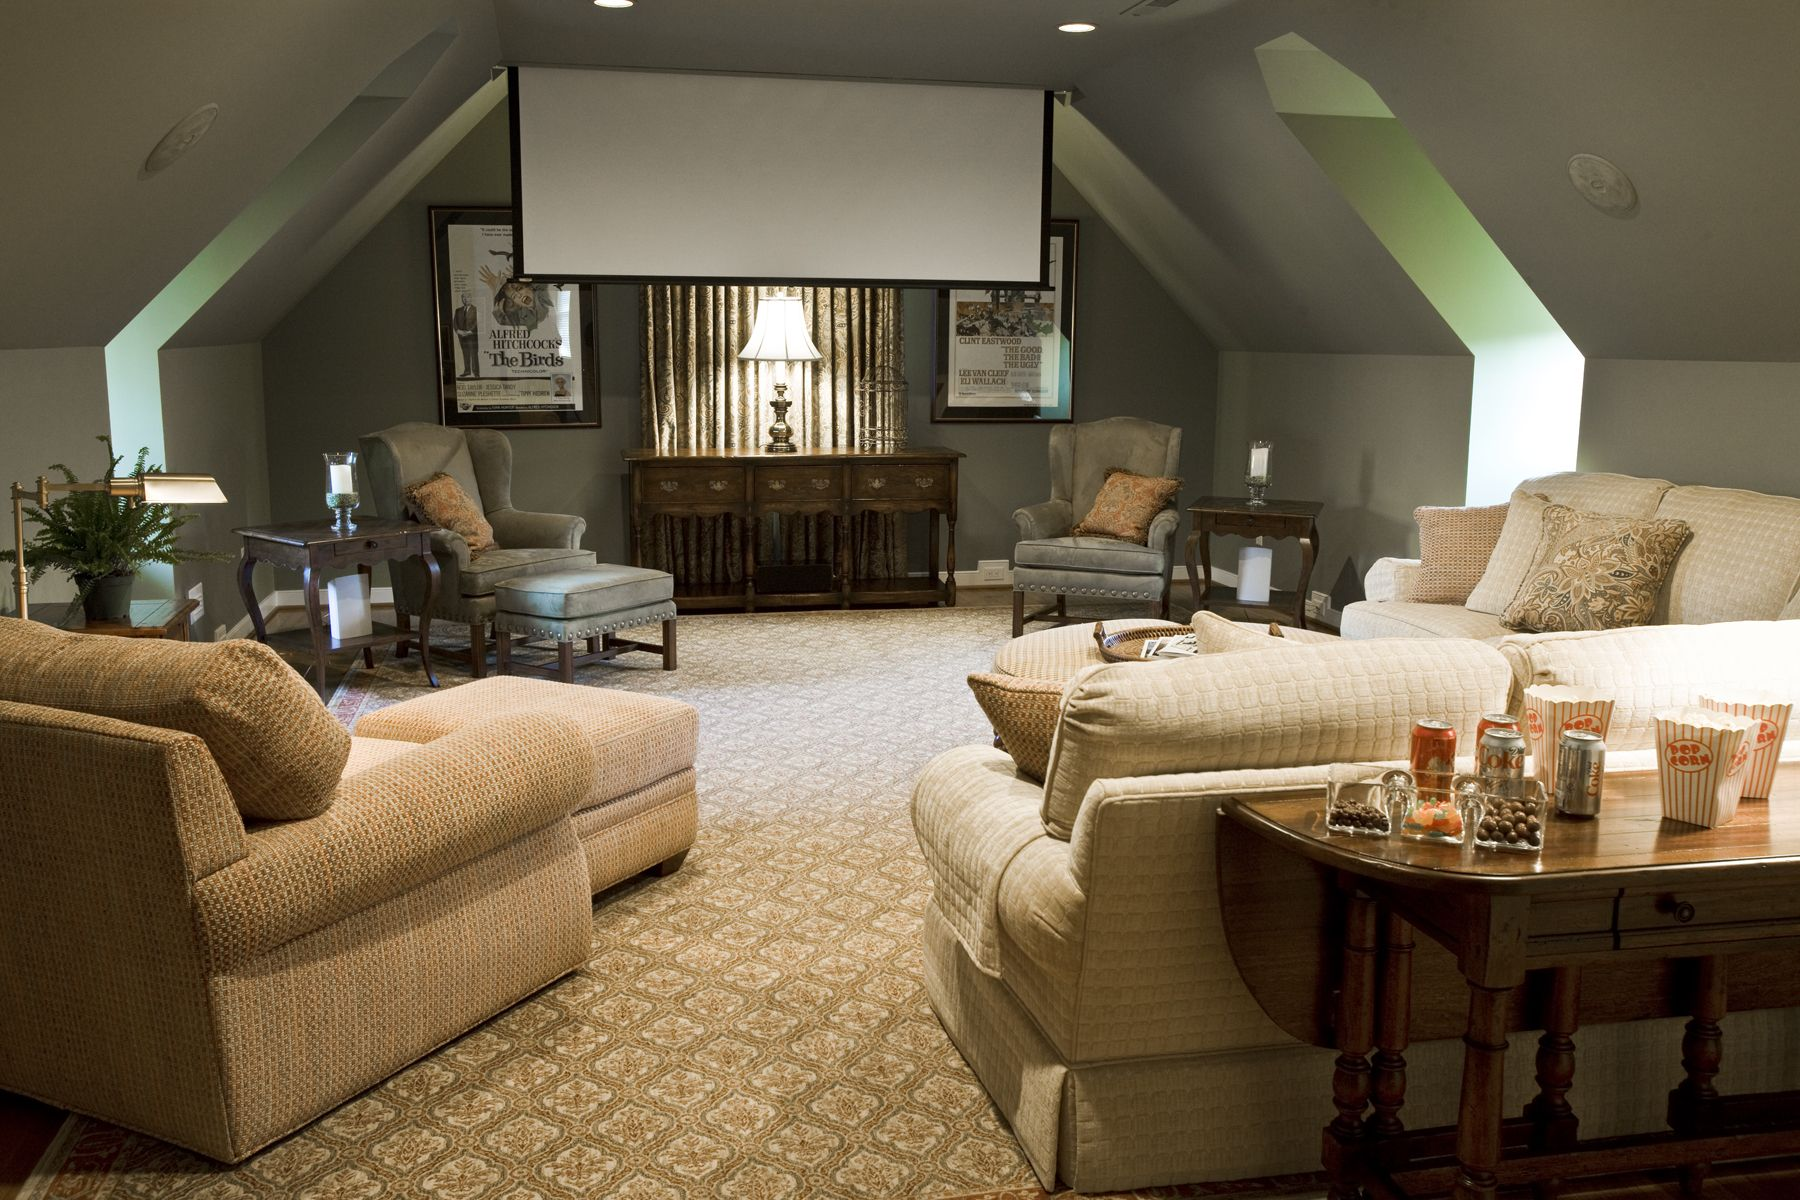 Media Room With Large Sectional Sofa Sueded Pillows And Window